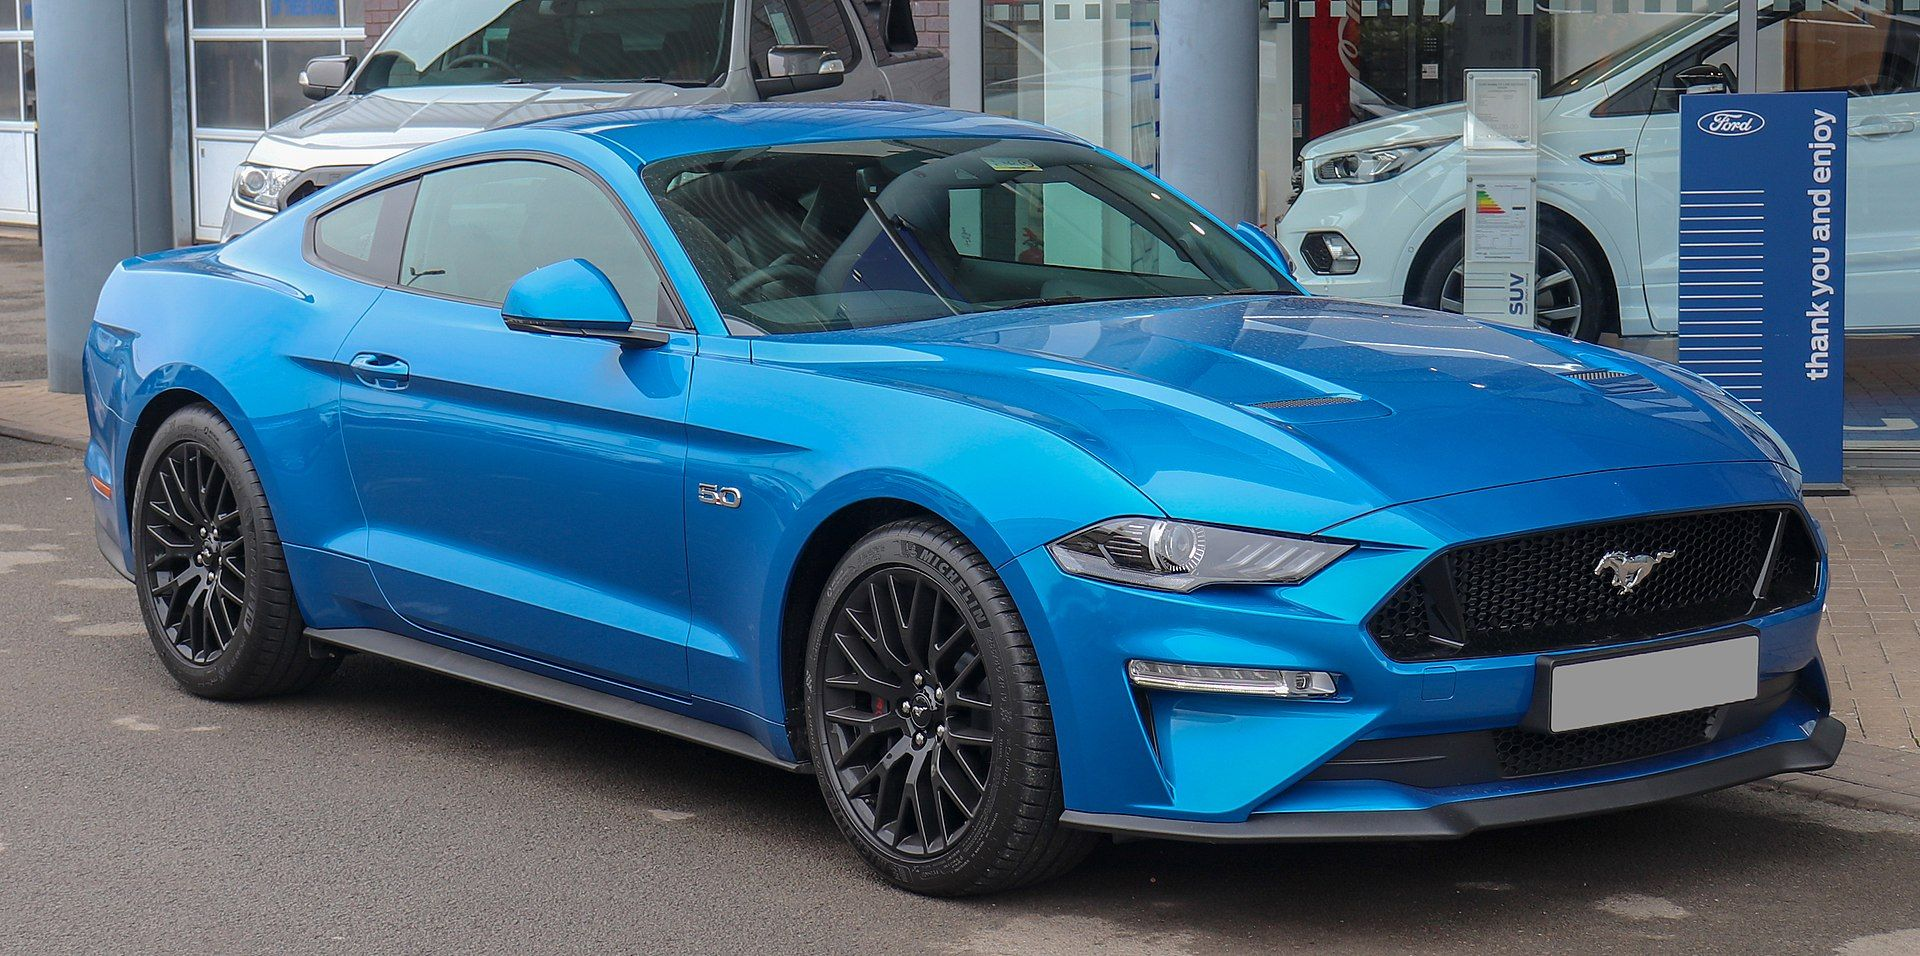 2019 Ford Mustang Gt 5 0 Facelift Ford Mustang Wikipedia